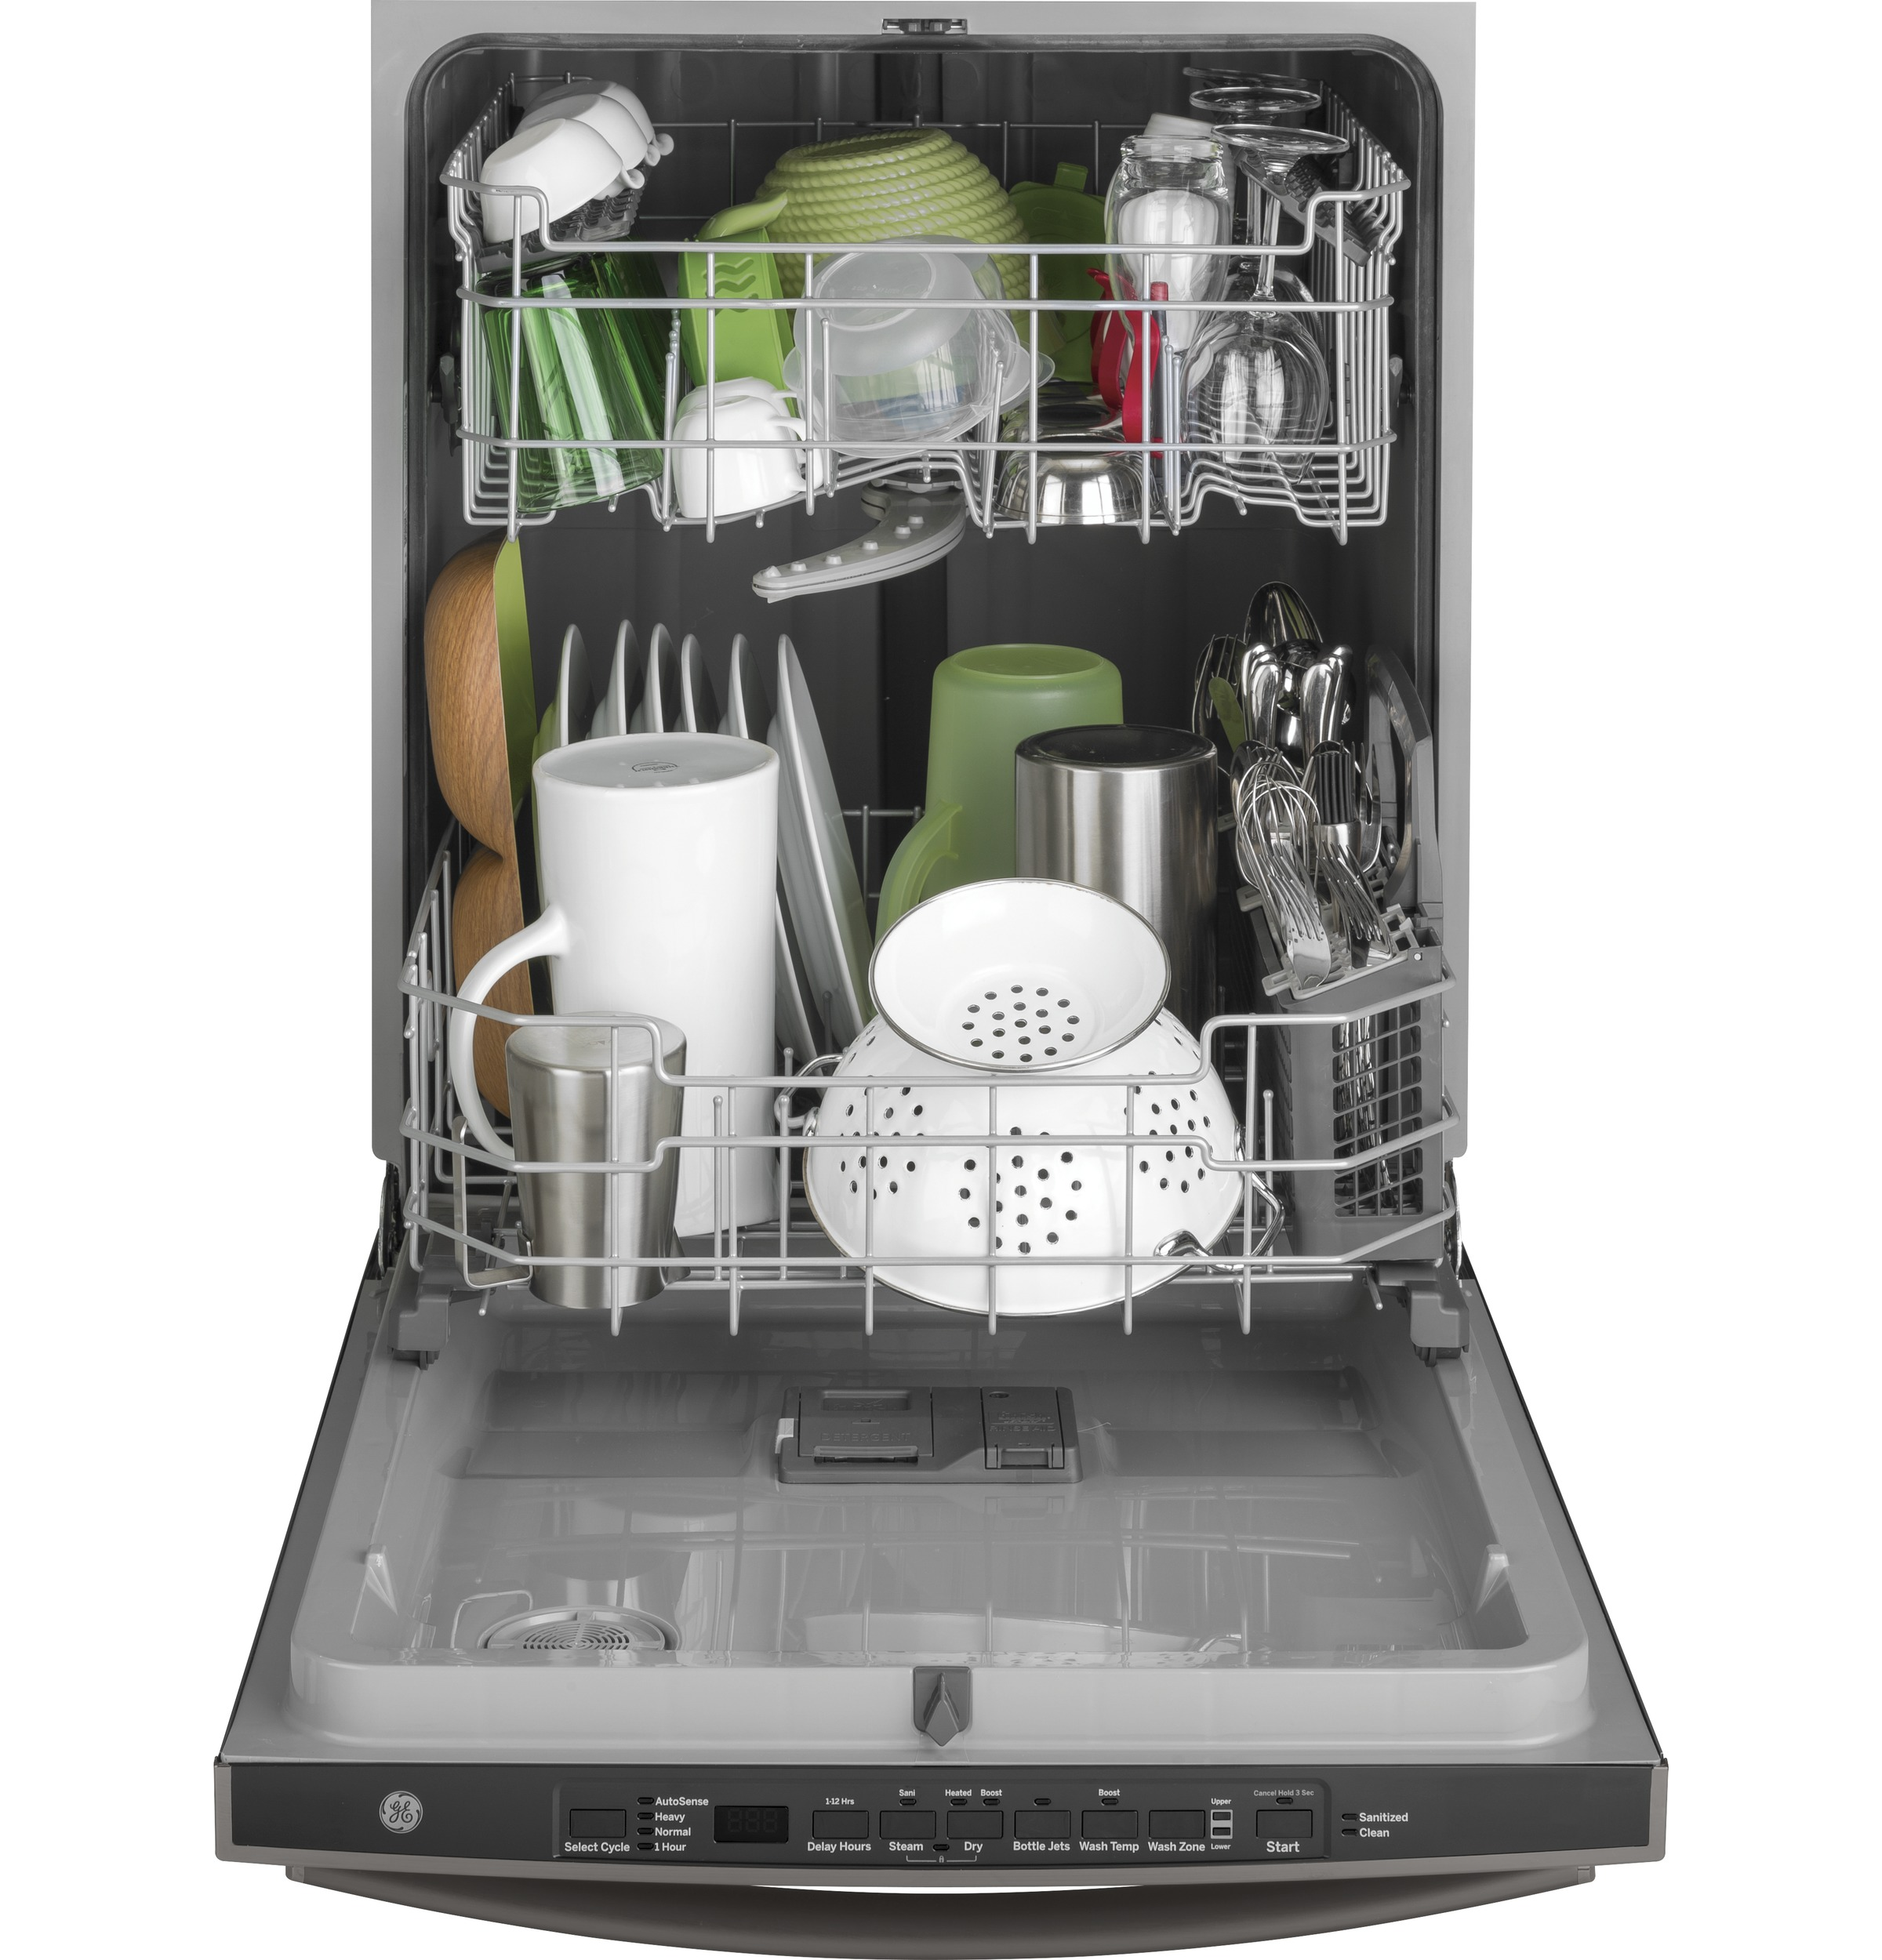 Model: GDT605PBMTS | GE GE® Dishwasher with Hidden Controls